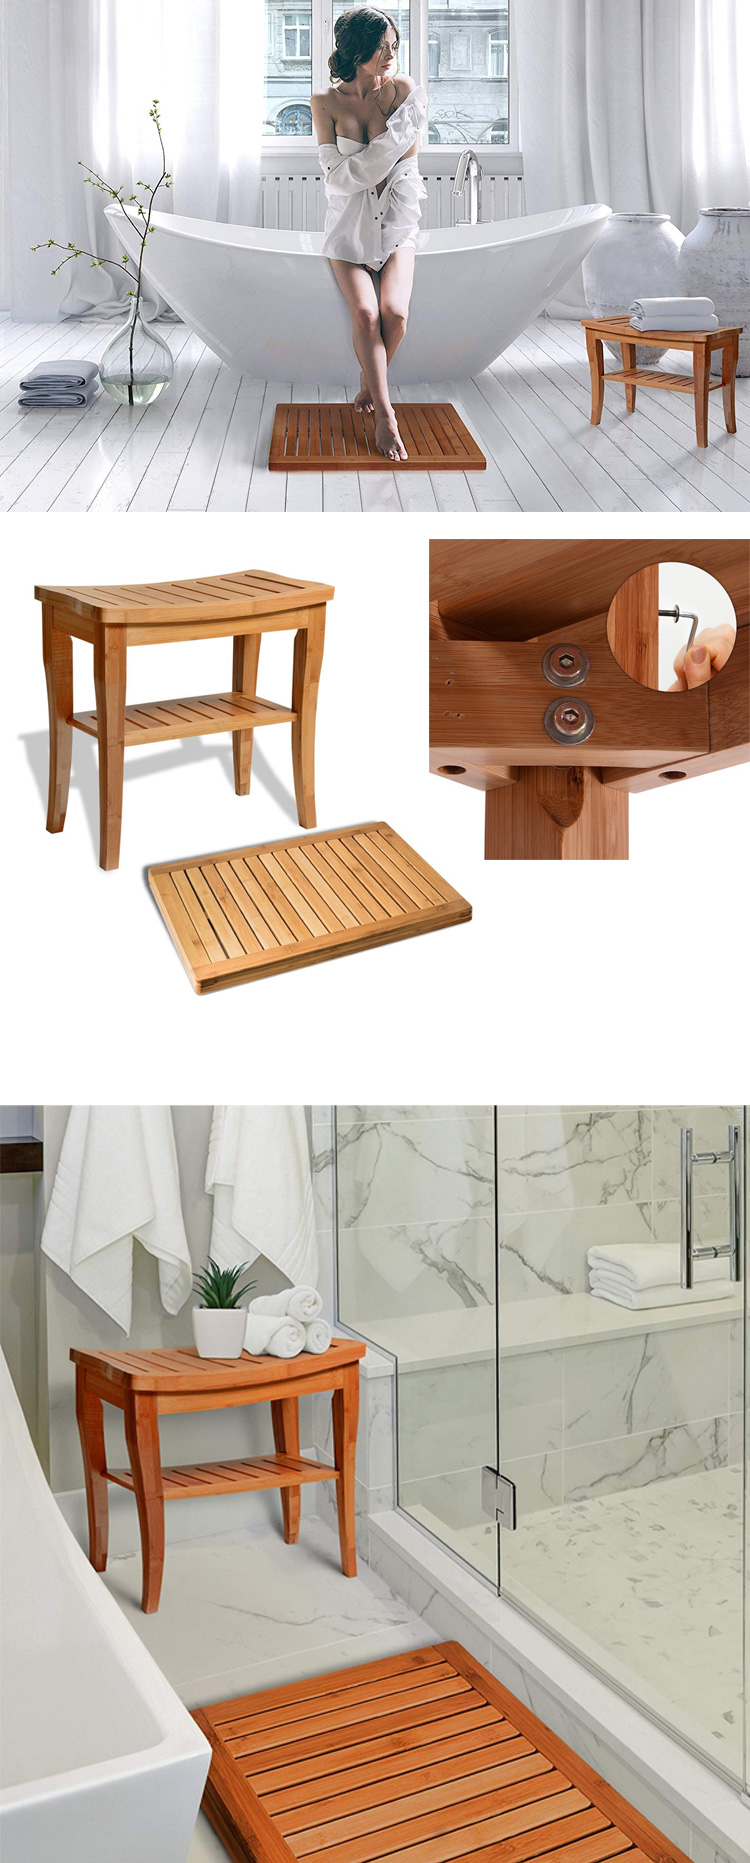 100% Natural Bamboo Seat Bench Shower Stool Bench With Floor Mat